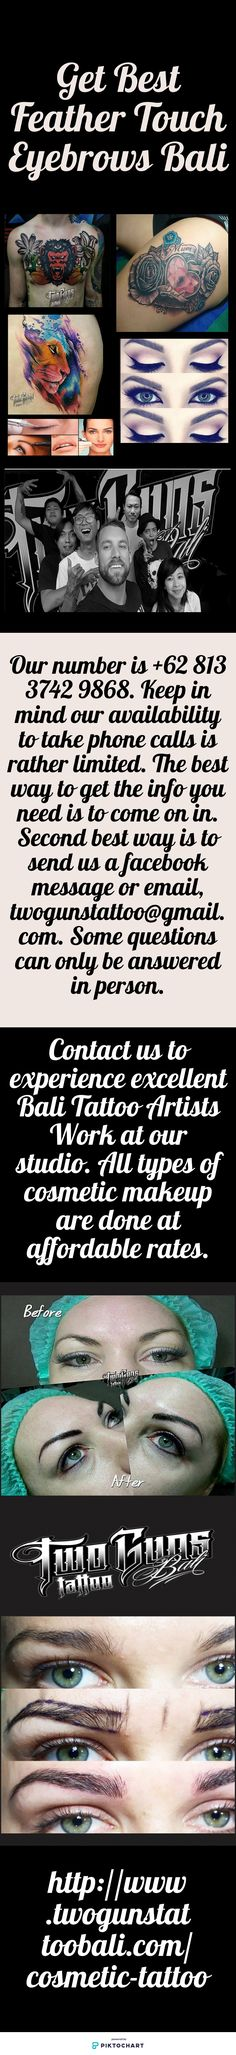 Get Best Feather Touch Eyebrows Bali from twoguns tattoo Bali. We have expert artists who use pigmentation to enhance your eyebrows. To know more about Feather Eyebrows service, contact our Bali Tattoo Artists today. Also Visit: http://www.twogunstattoobali.com/cosmetic-tattoo